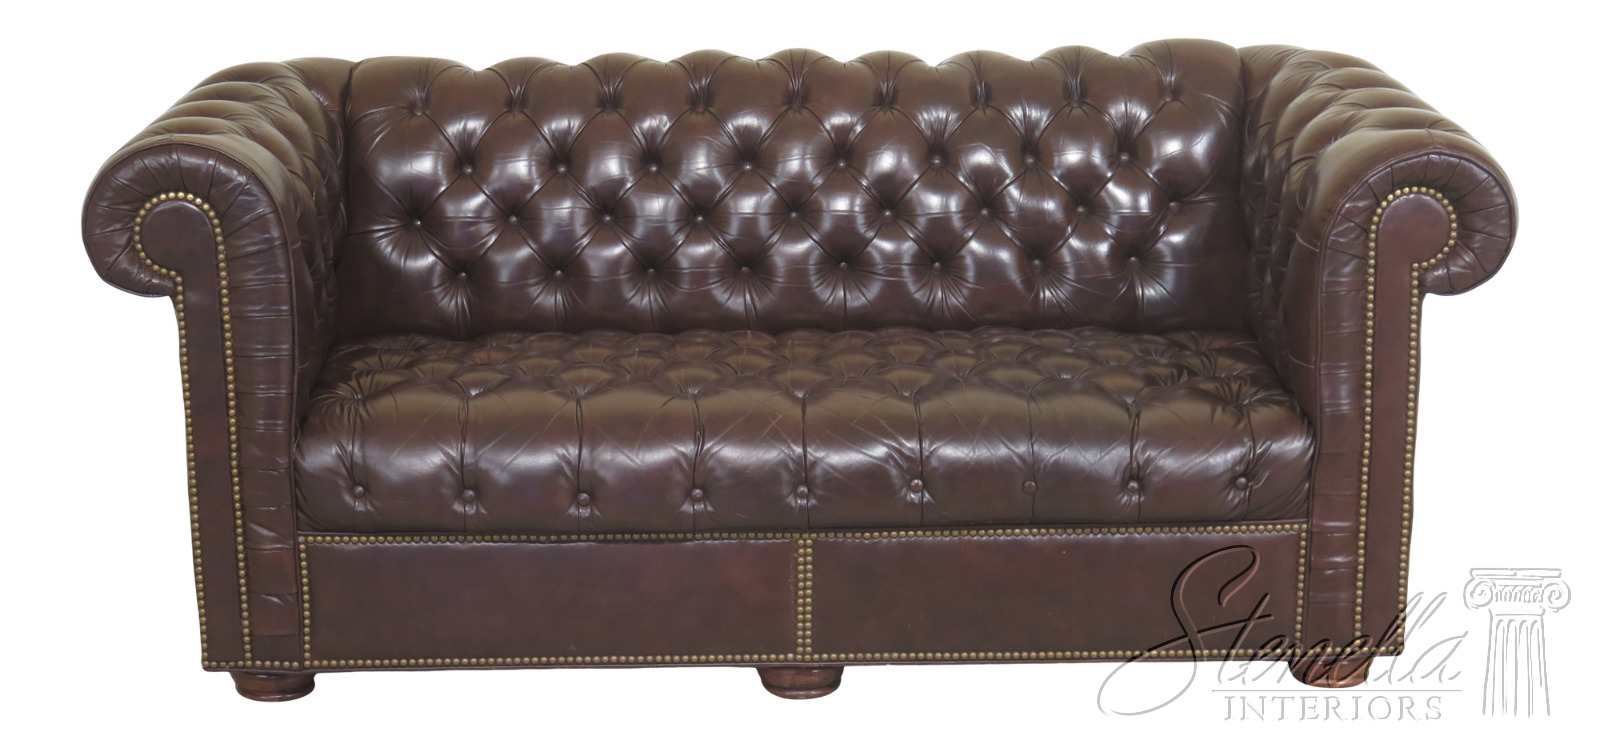 Details About F30790ec Brown Tufted Leather Chesterfield Sofa